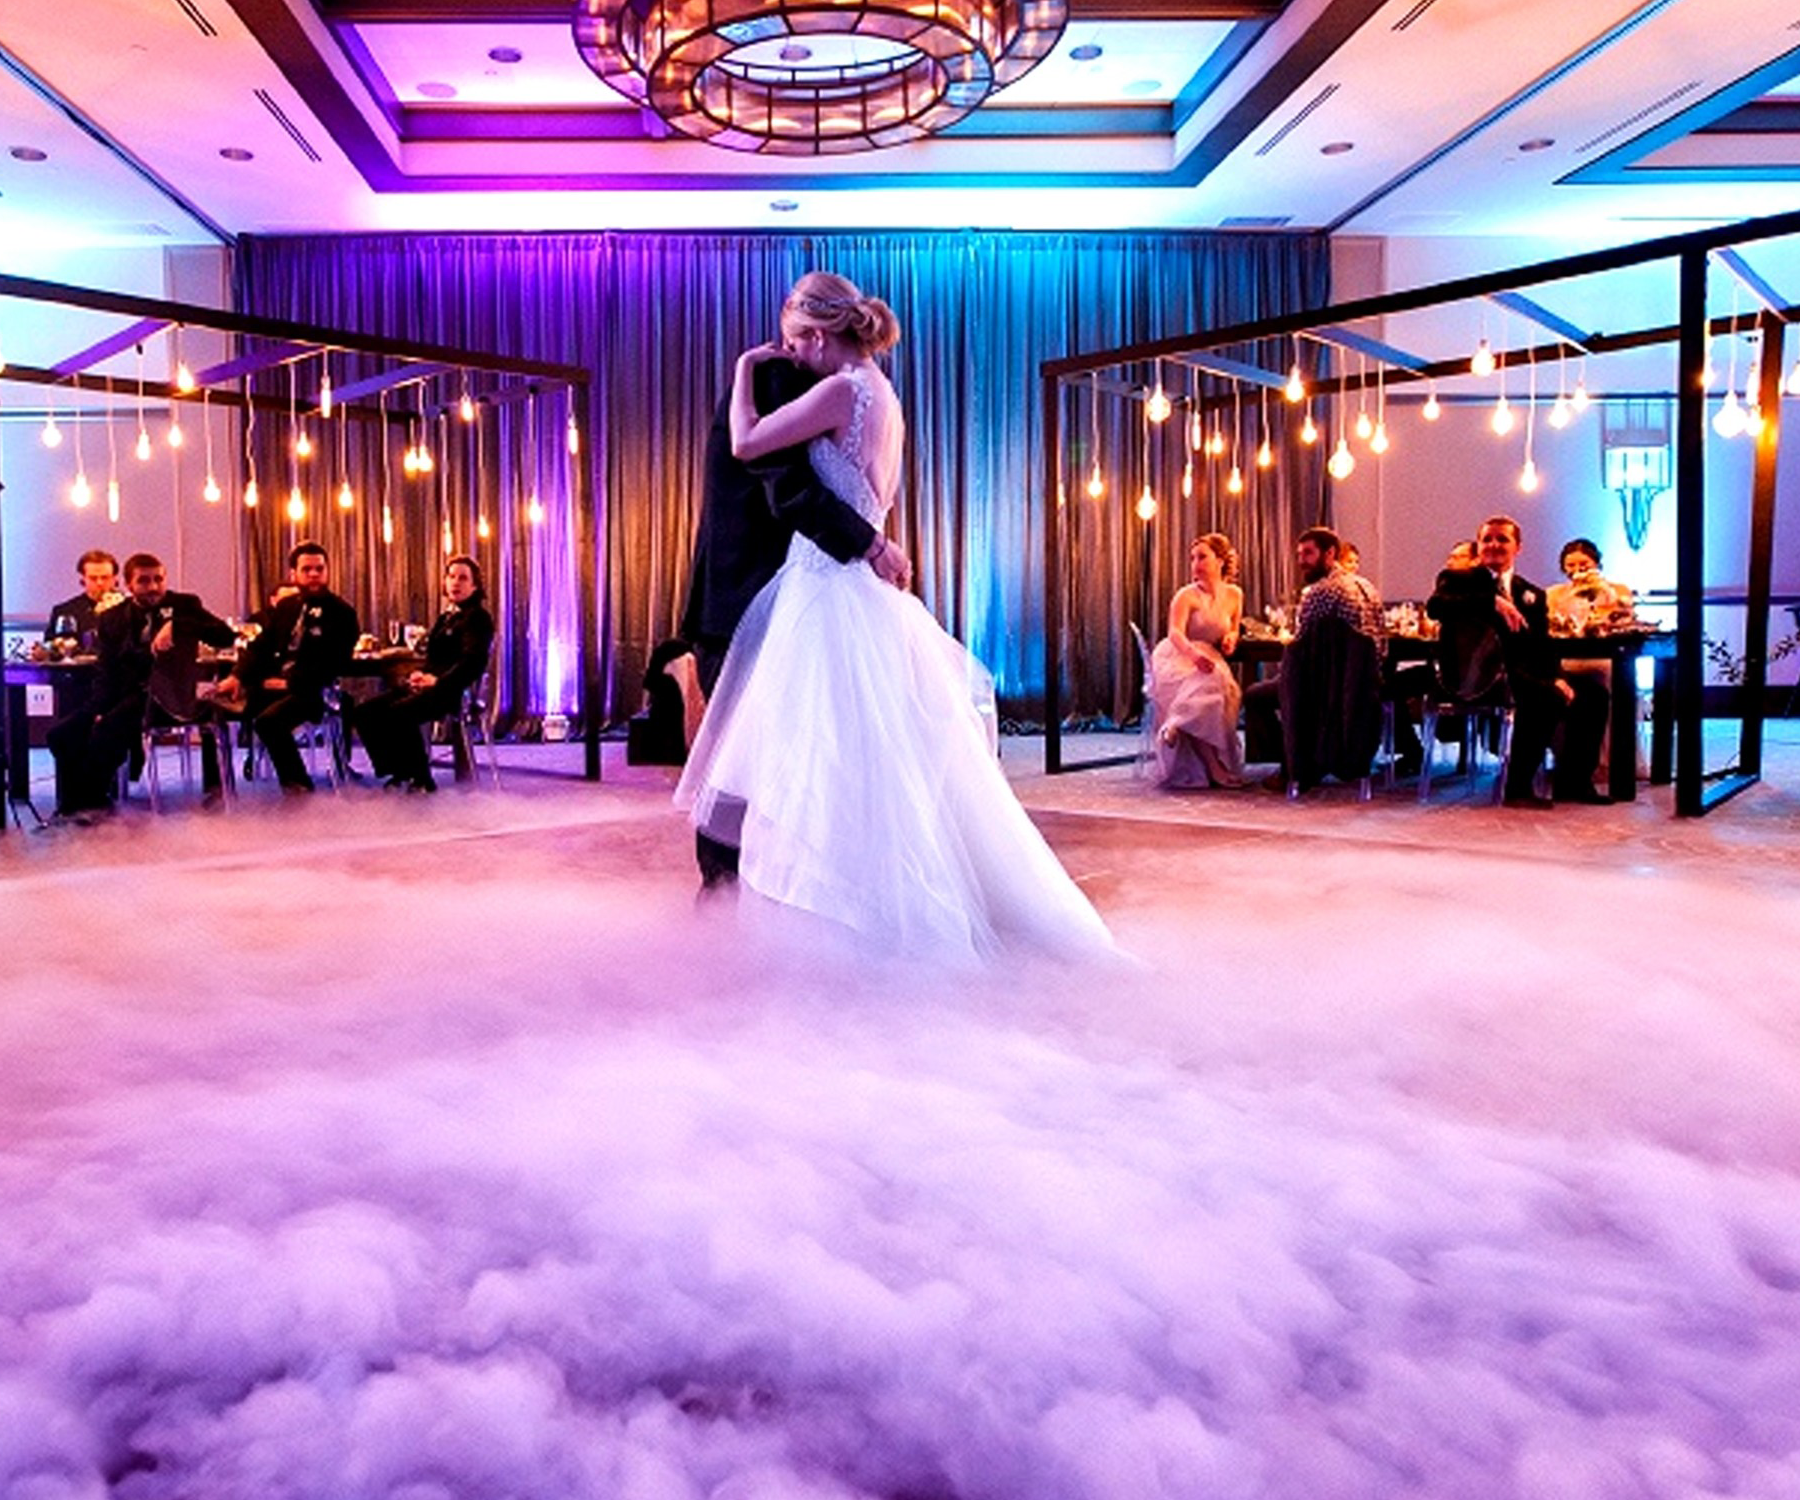 DANCING ON THE CLOUDS EXPERIENCE